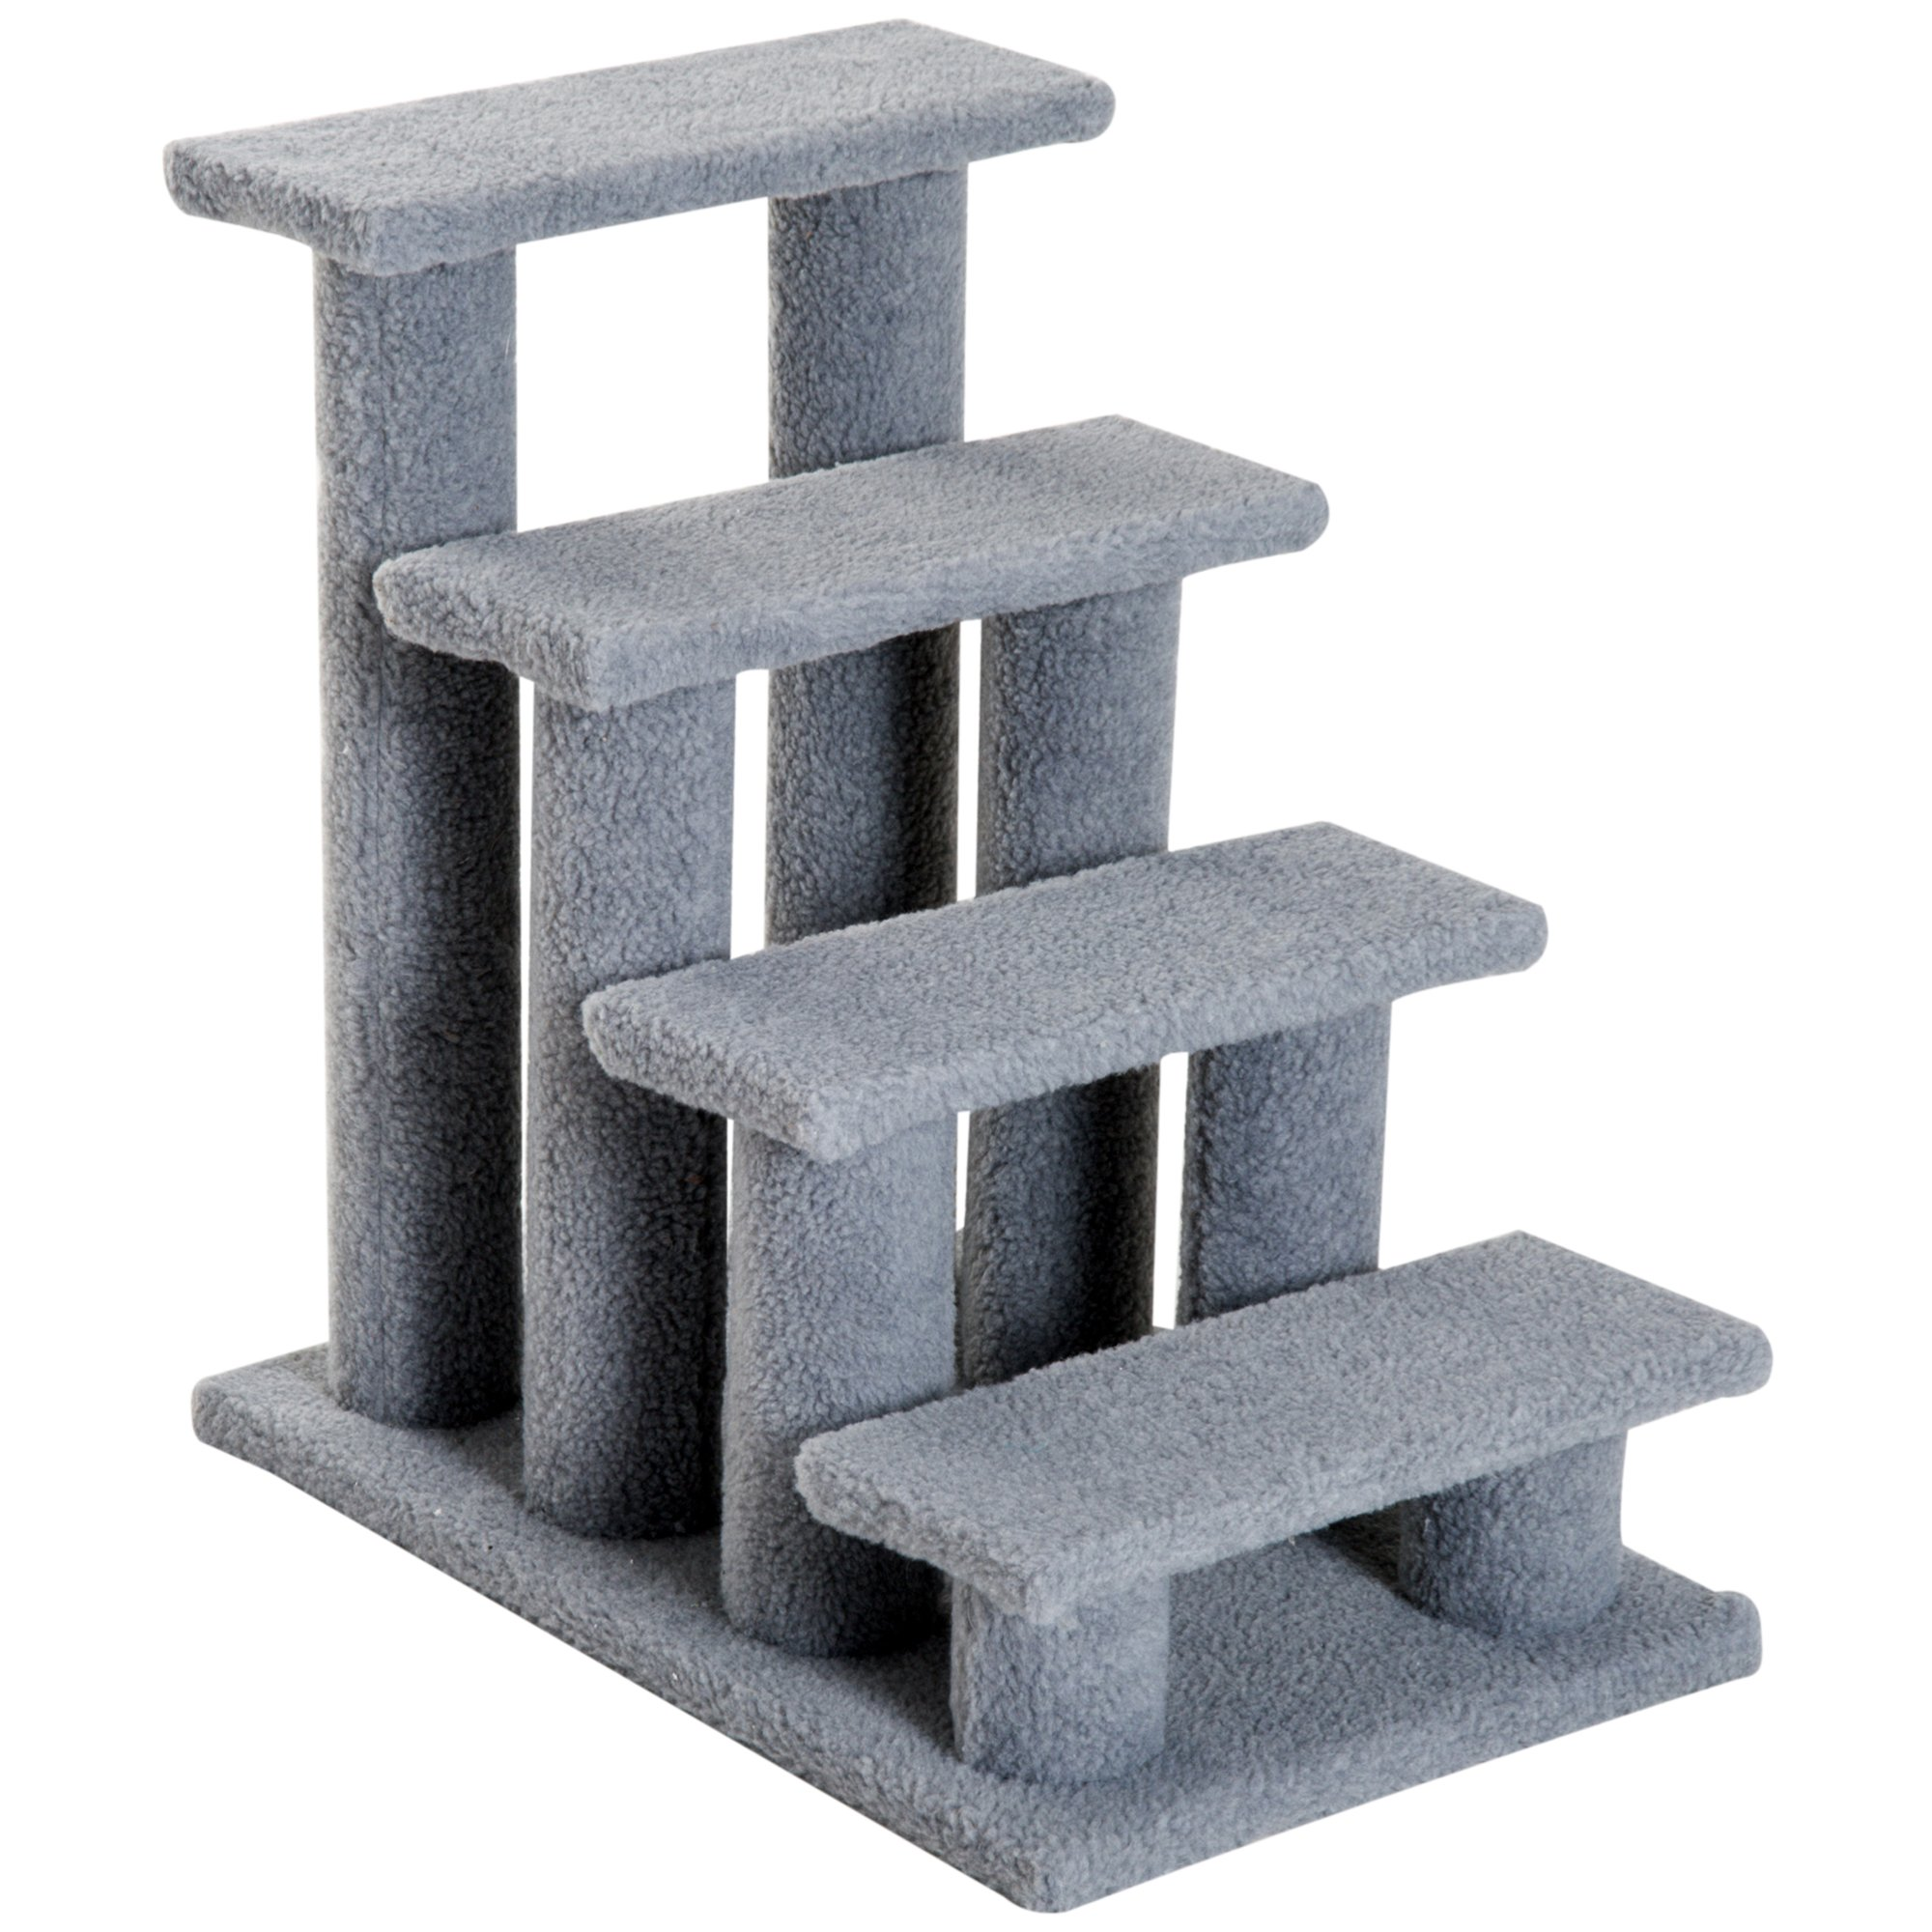 PawHut 25'' 4-Step Multi-Level Carpeted Cat Scratching Post Pet Stairs - Grey by PawHut